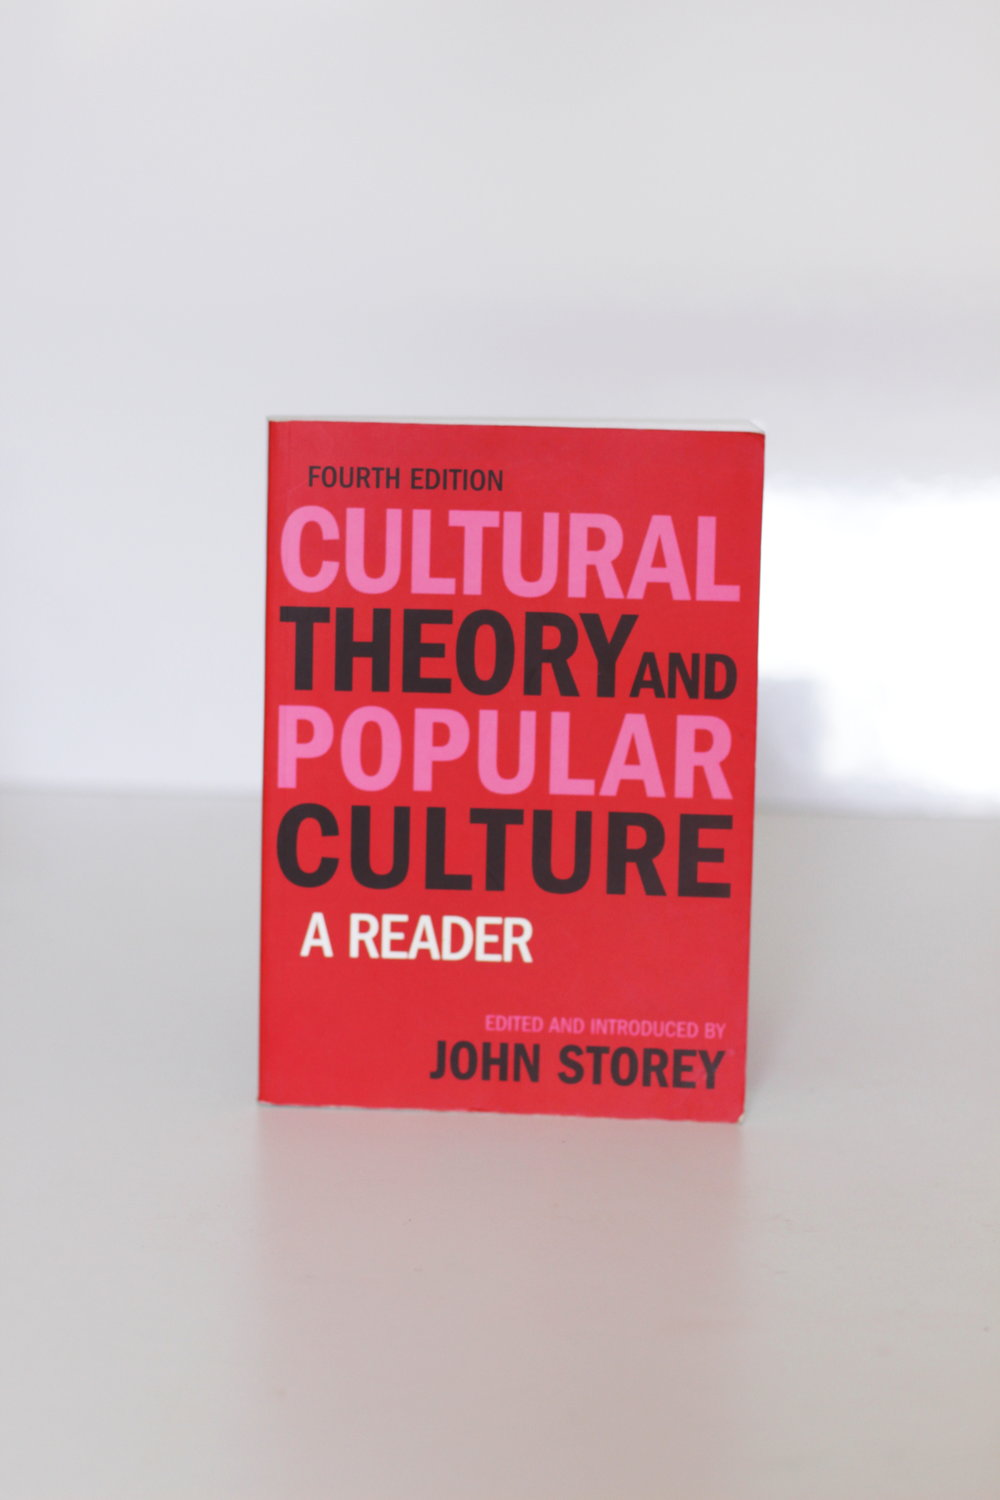 Cultural Theory and Popular Culture: A Reader – John Storey